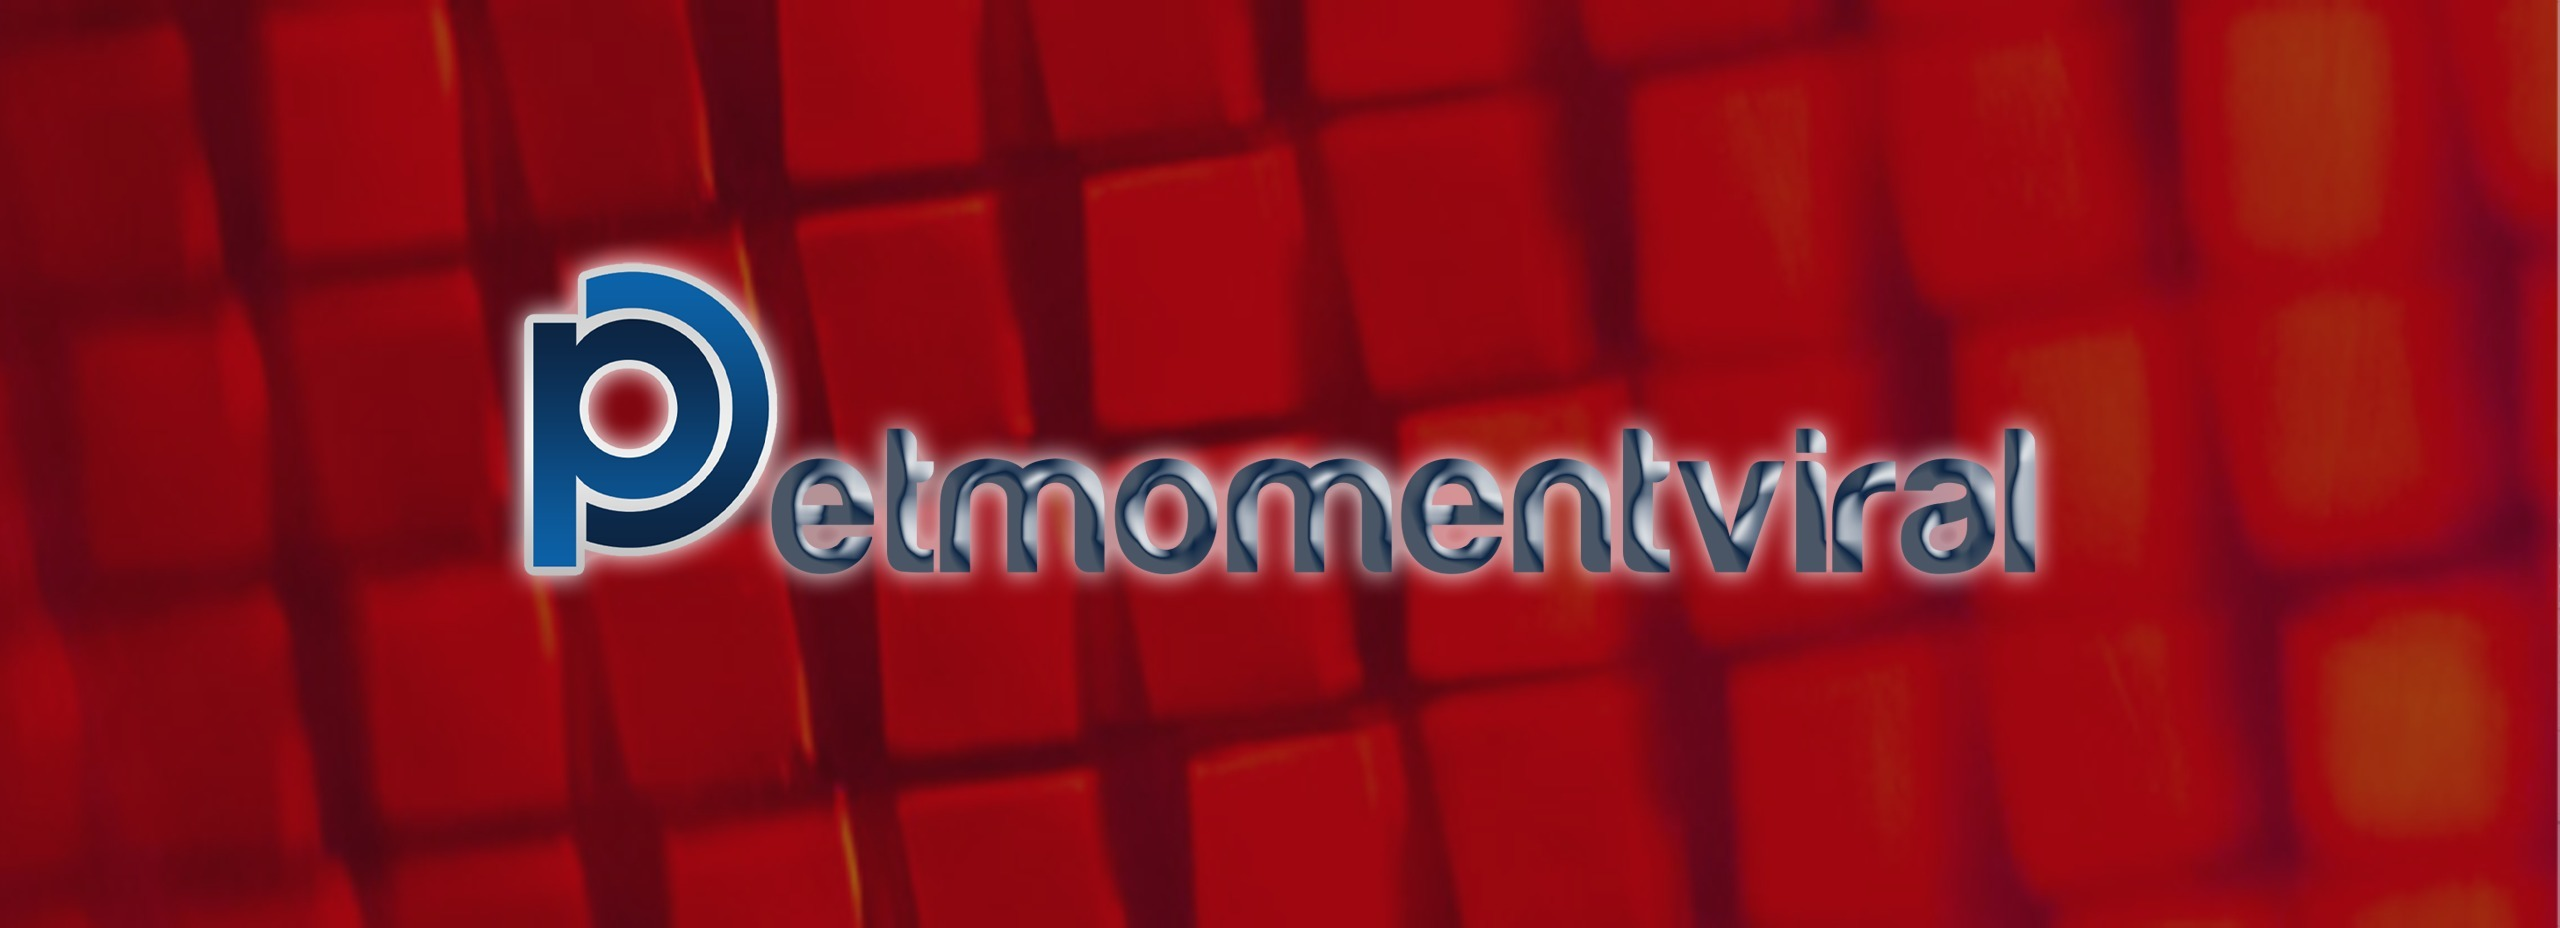 (@petmomentviral) Cover Image